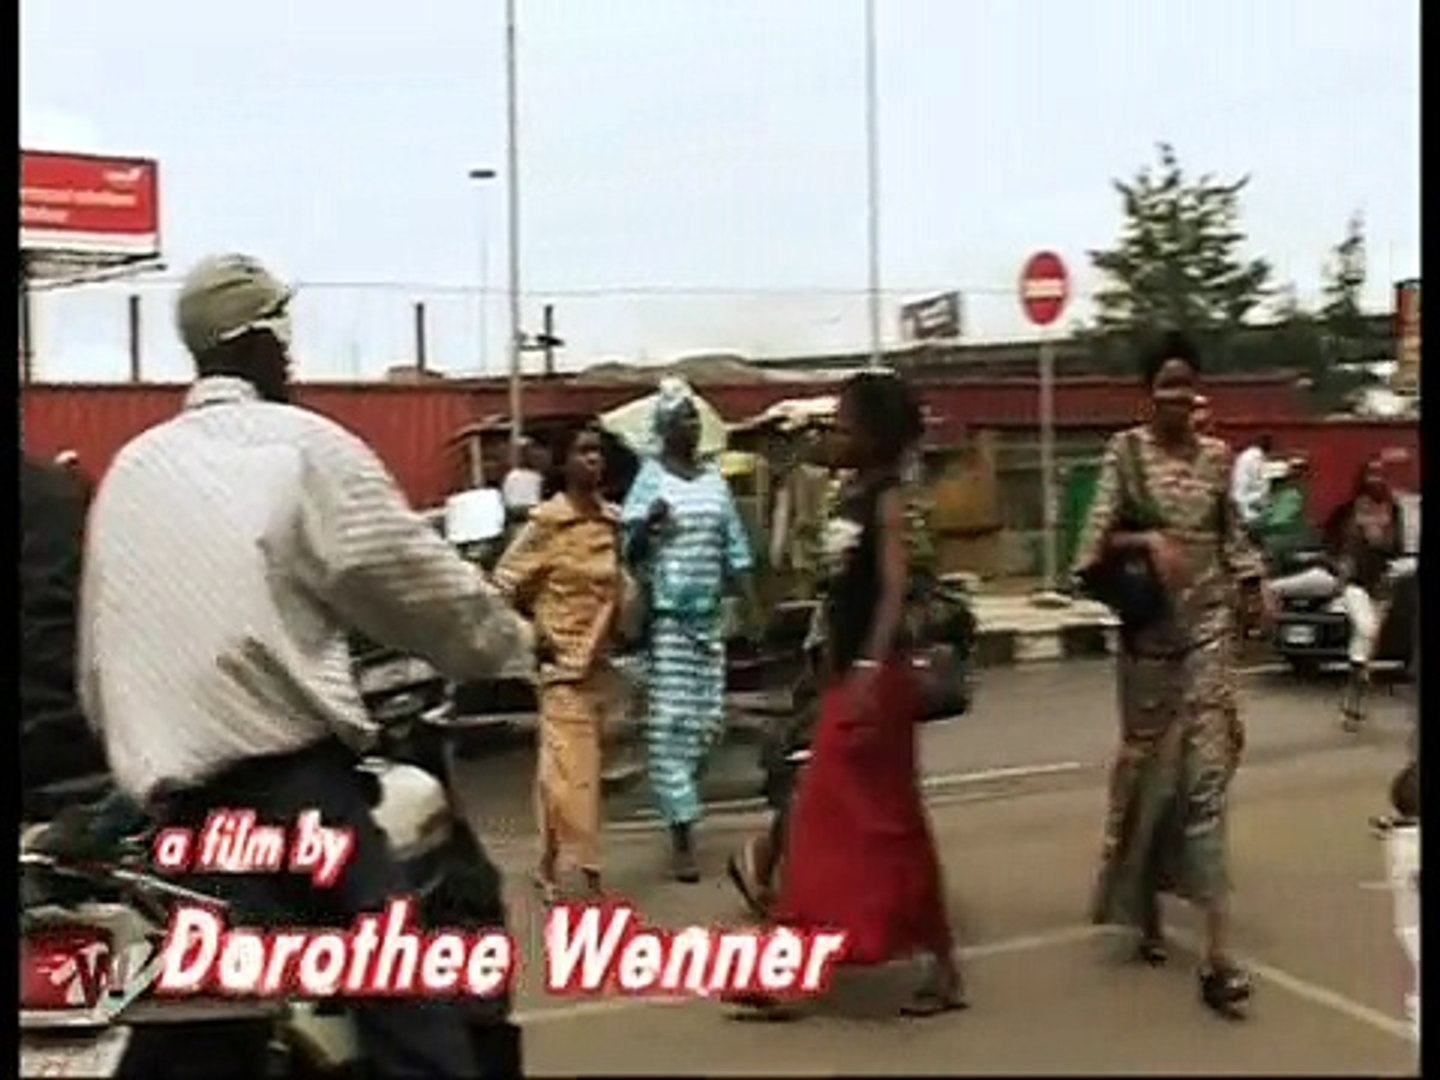 NOLLYWOOD LADY   Women Make Movies   Trailer